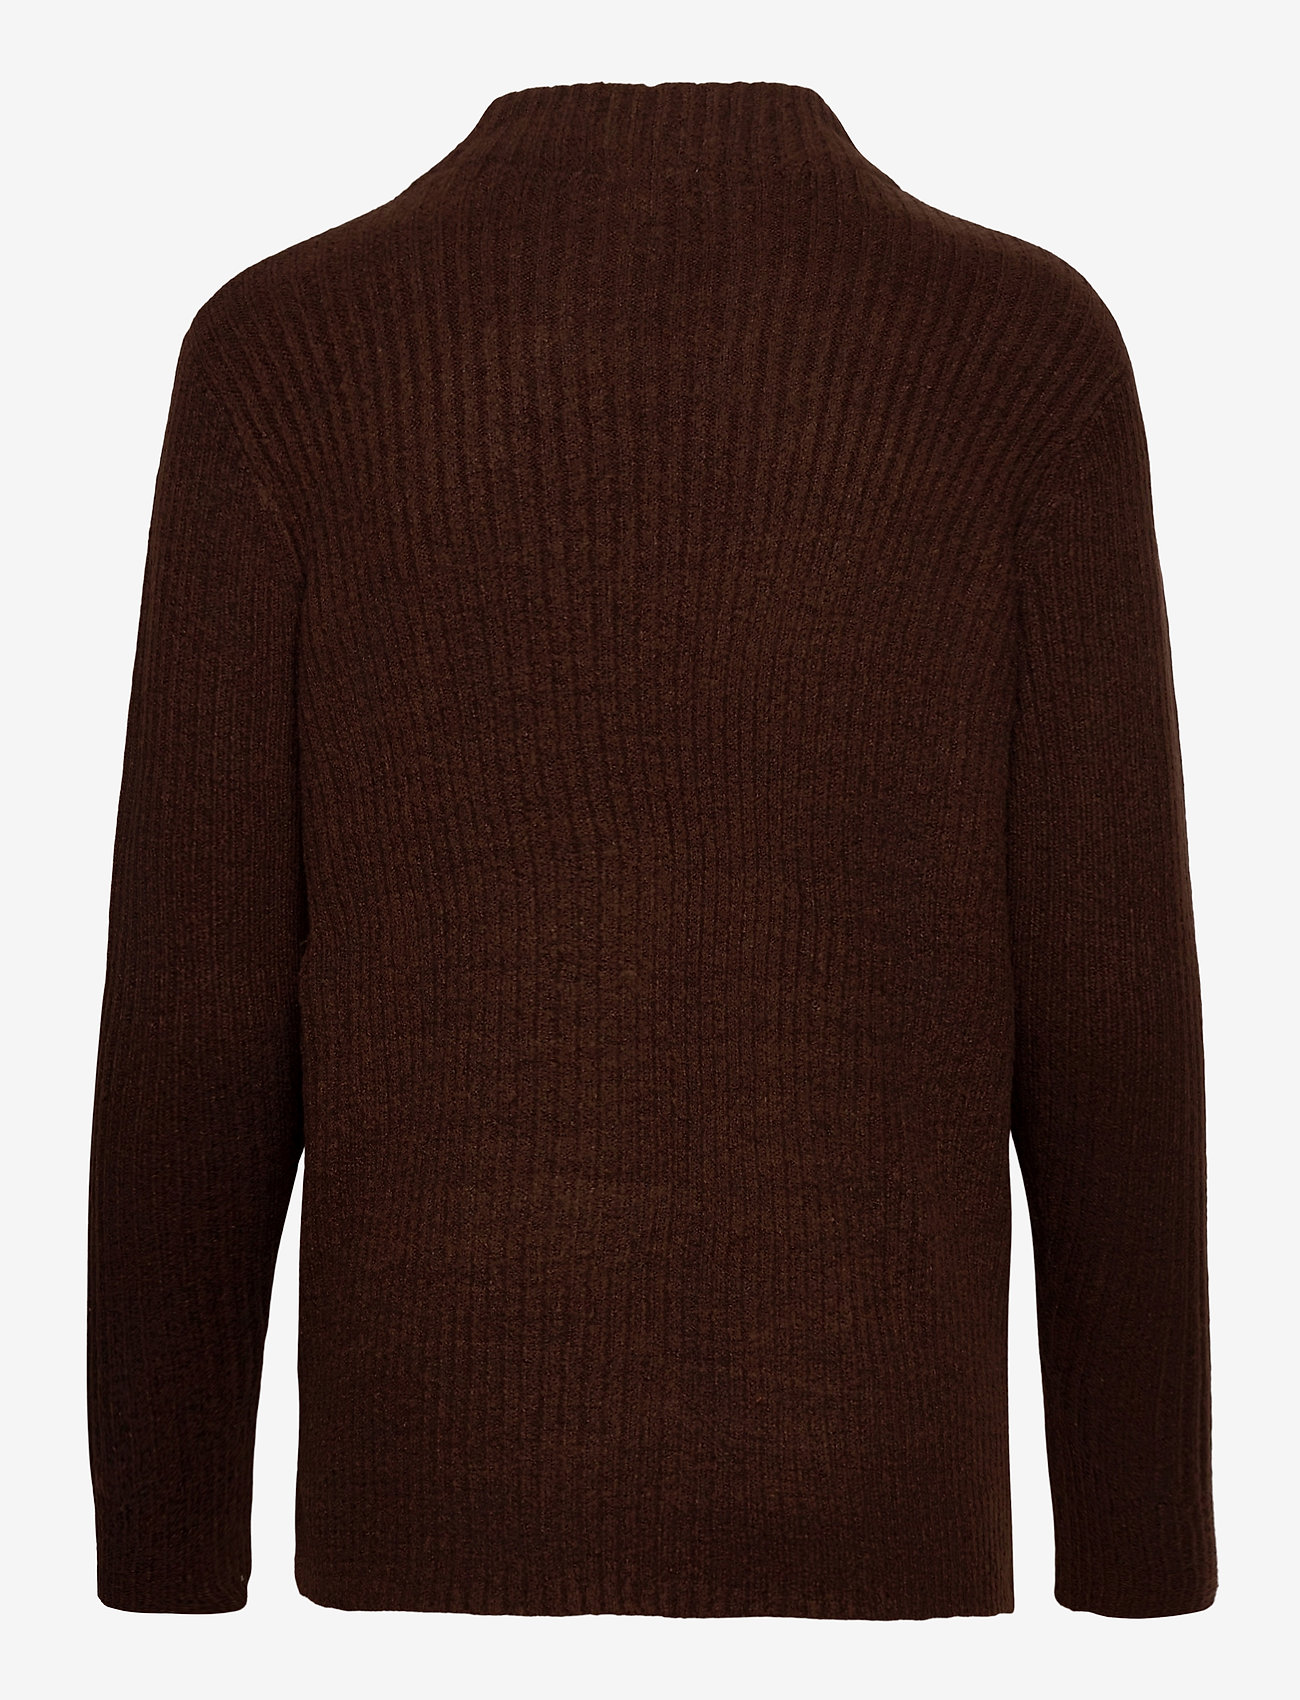 b.young - BYNORA JUMPER 2 - - jumpers - chicory coffee - 1